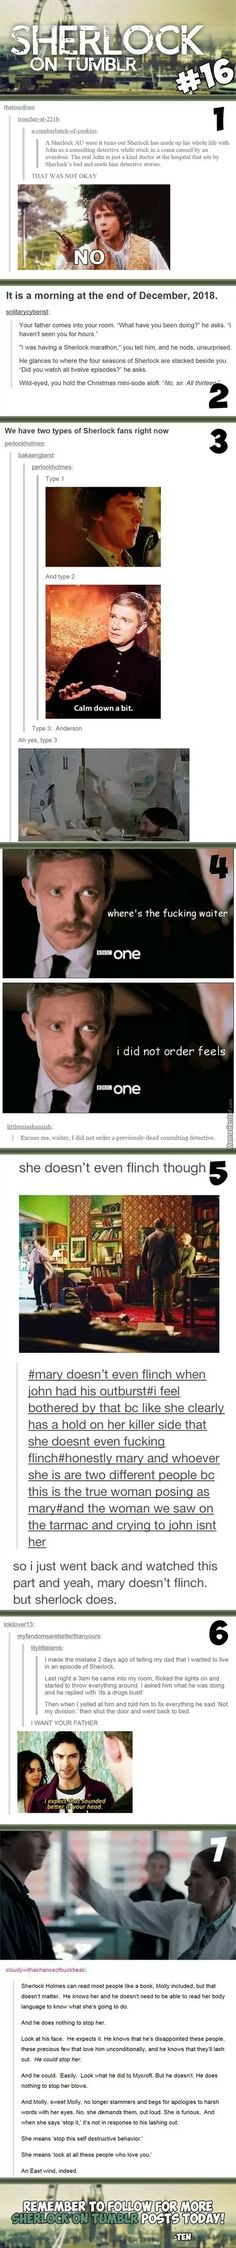 Sherlock On Tumblr #16